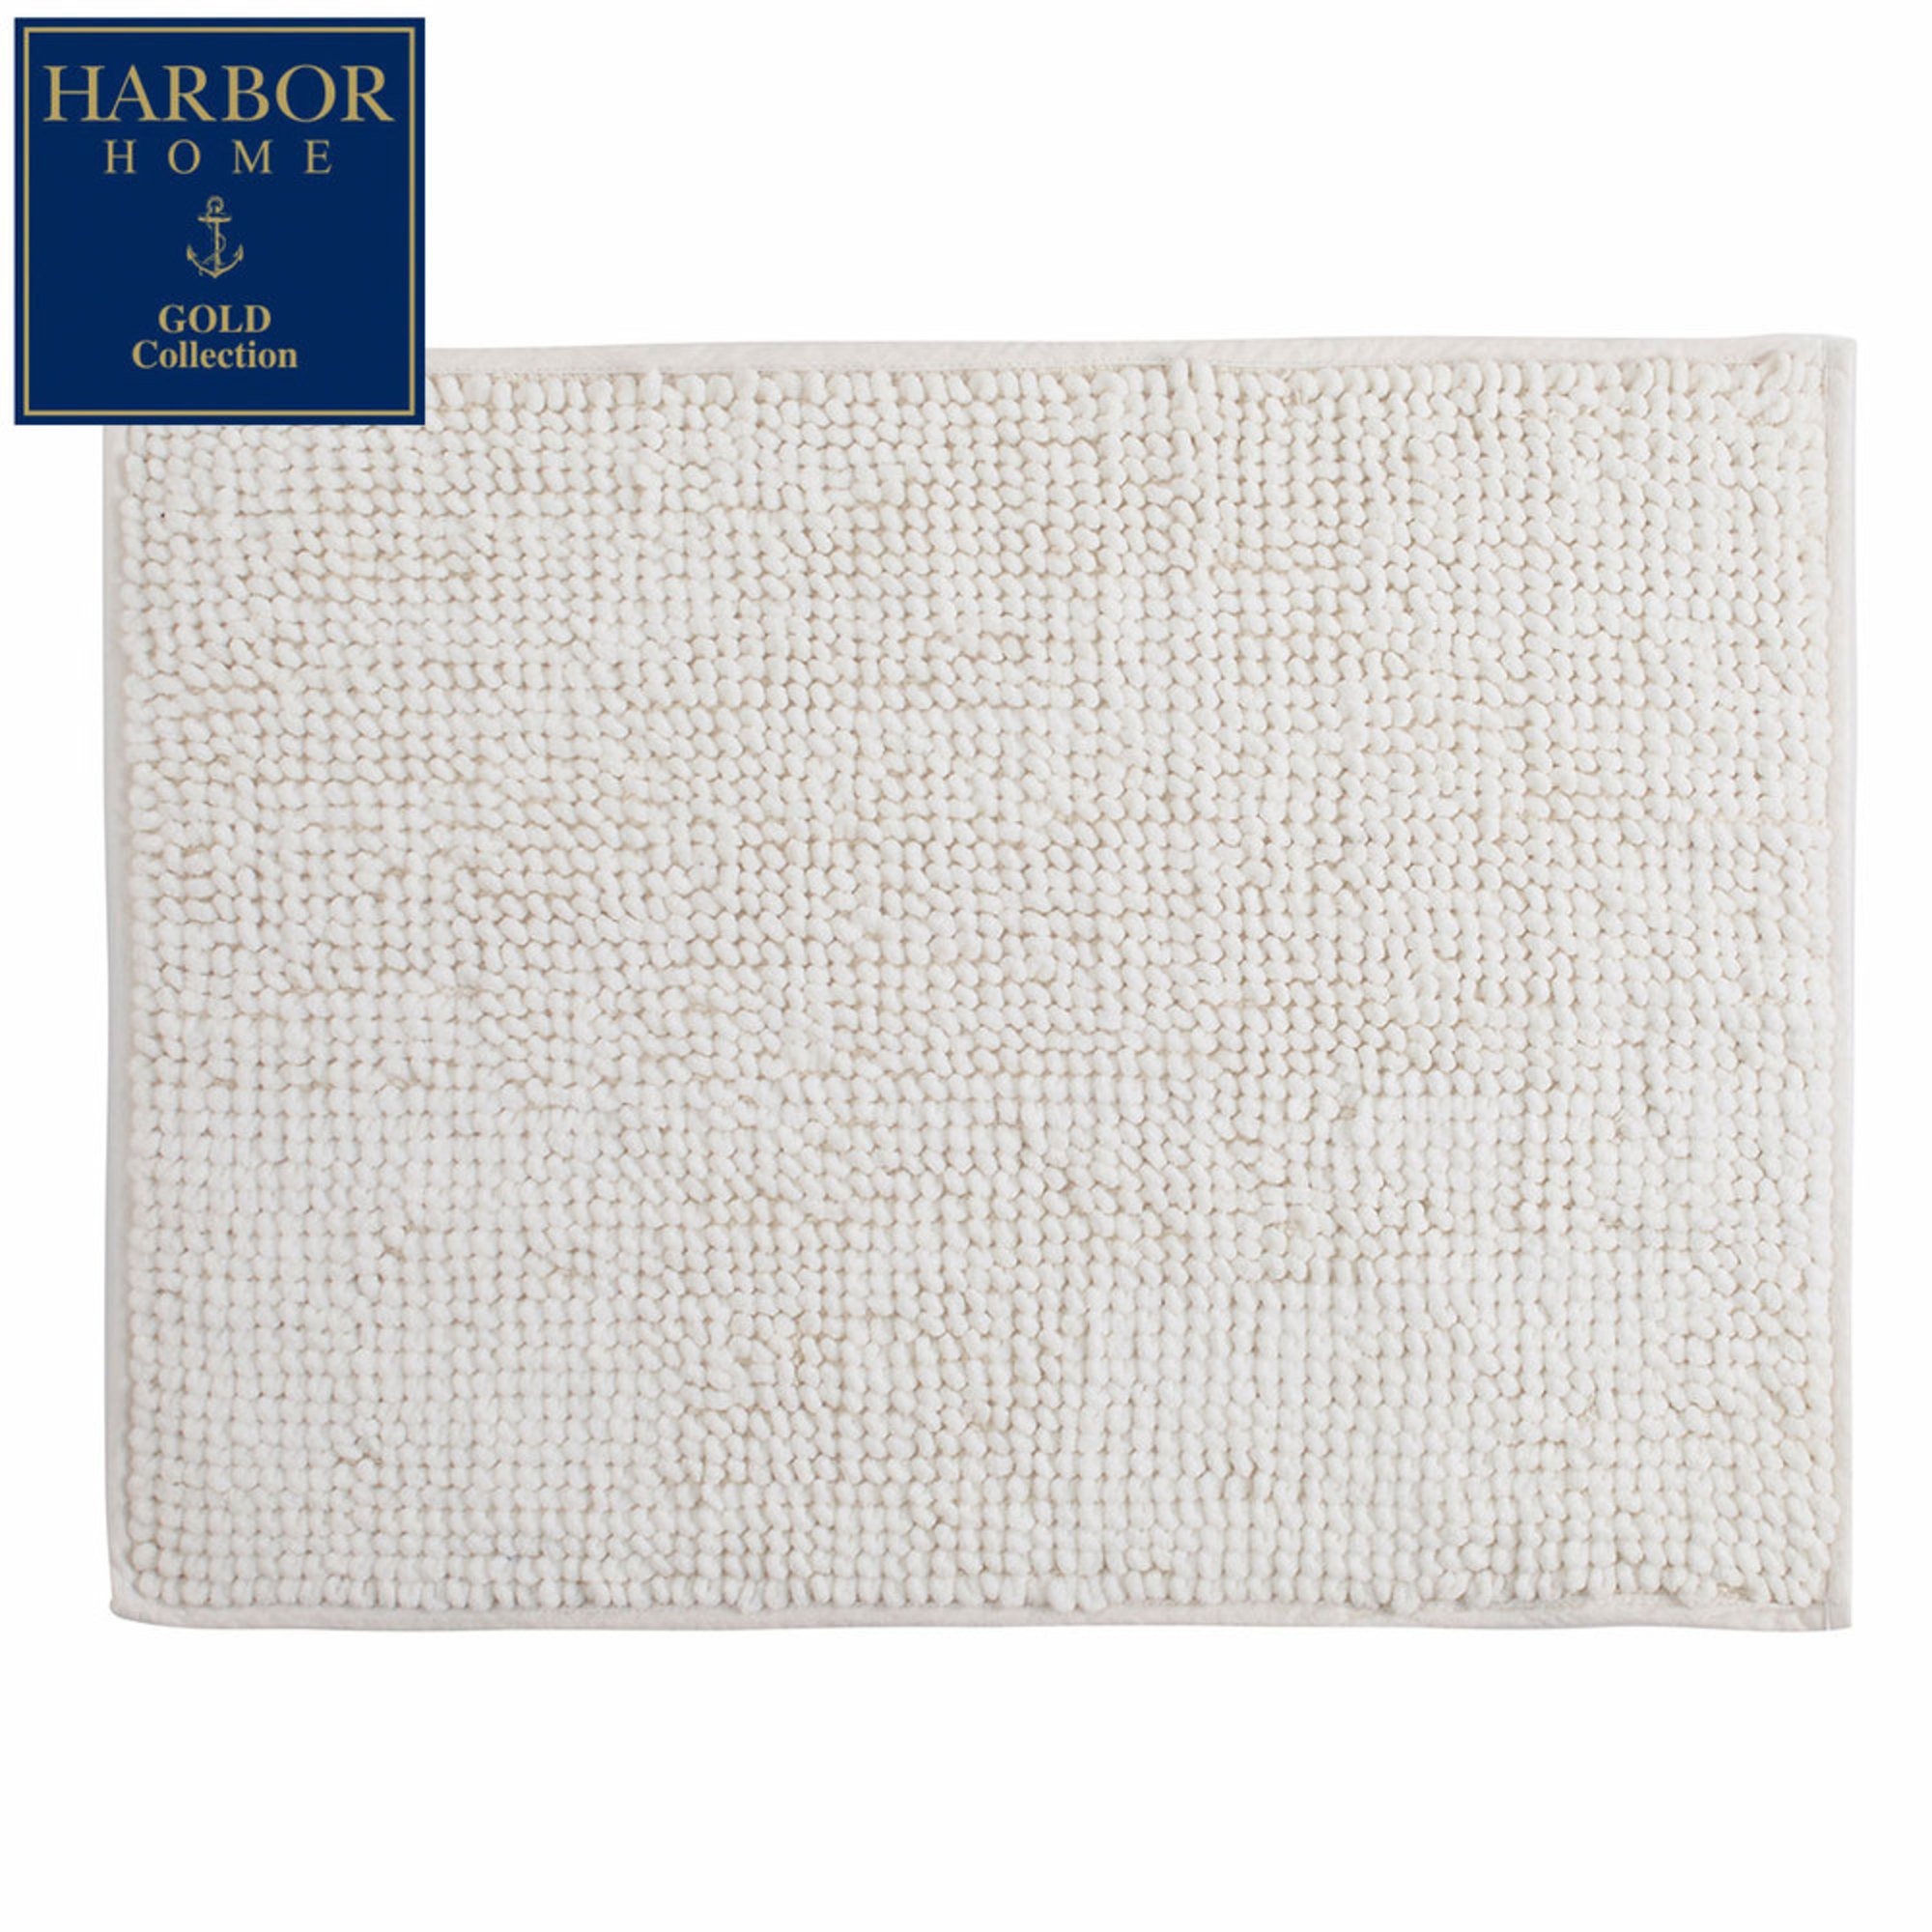 harbor home gold collection 17x24 bath rug, white | bath rugs